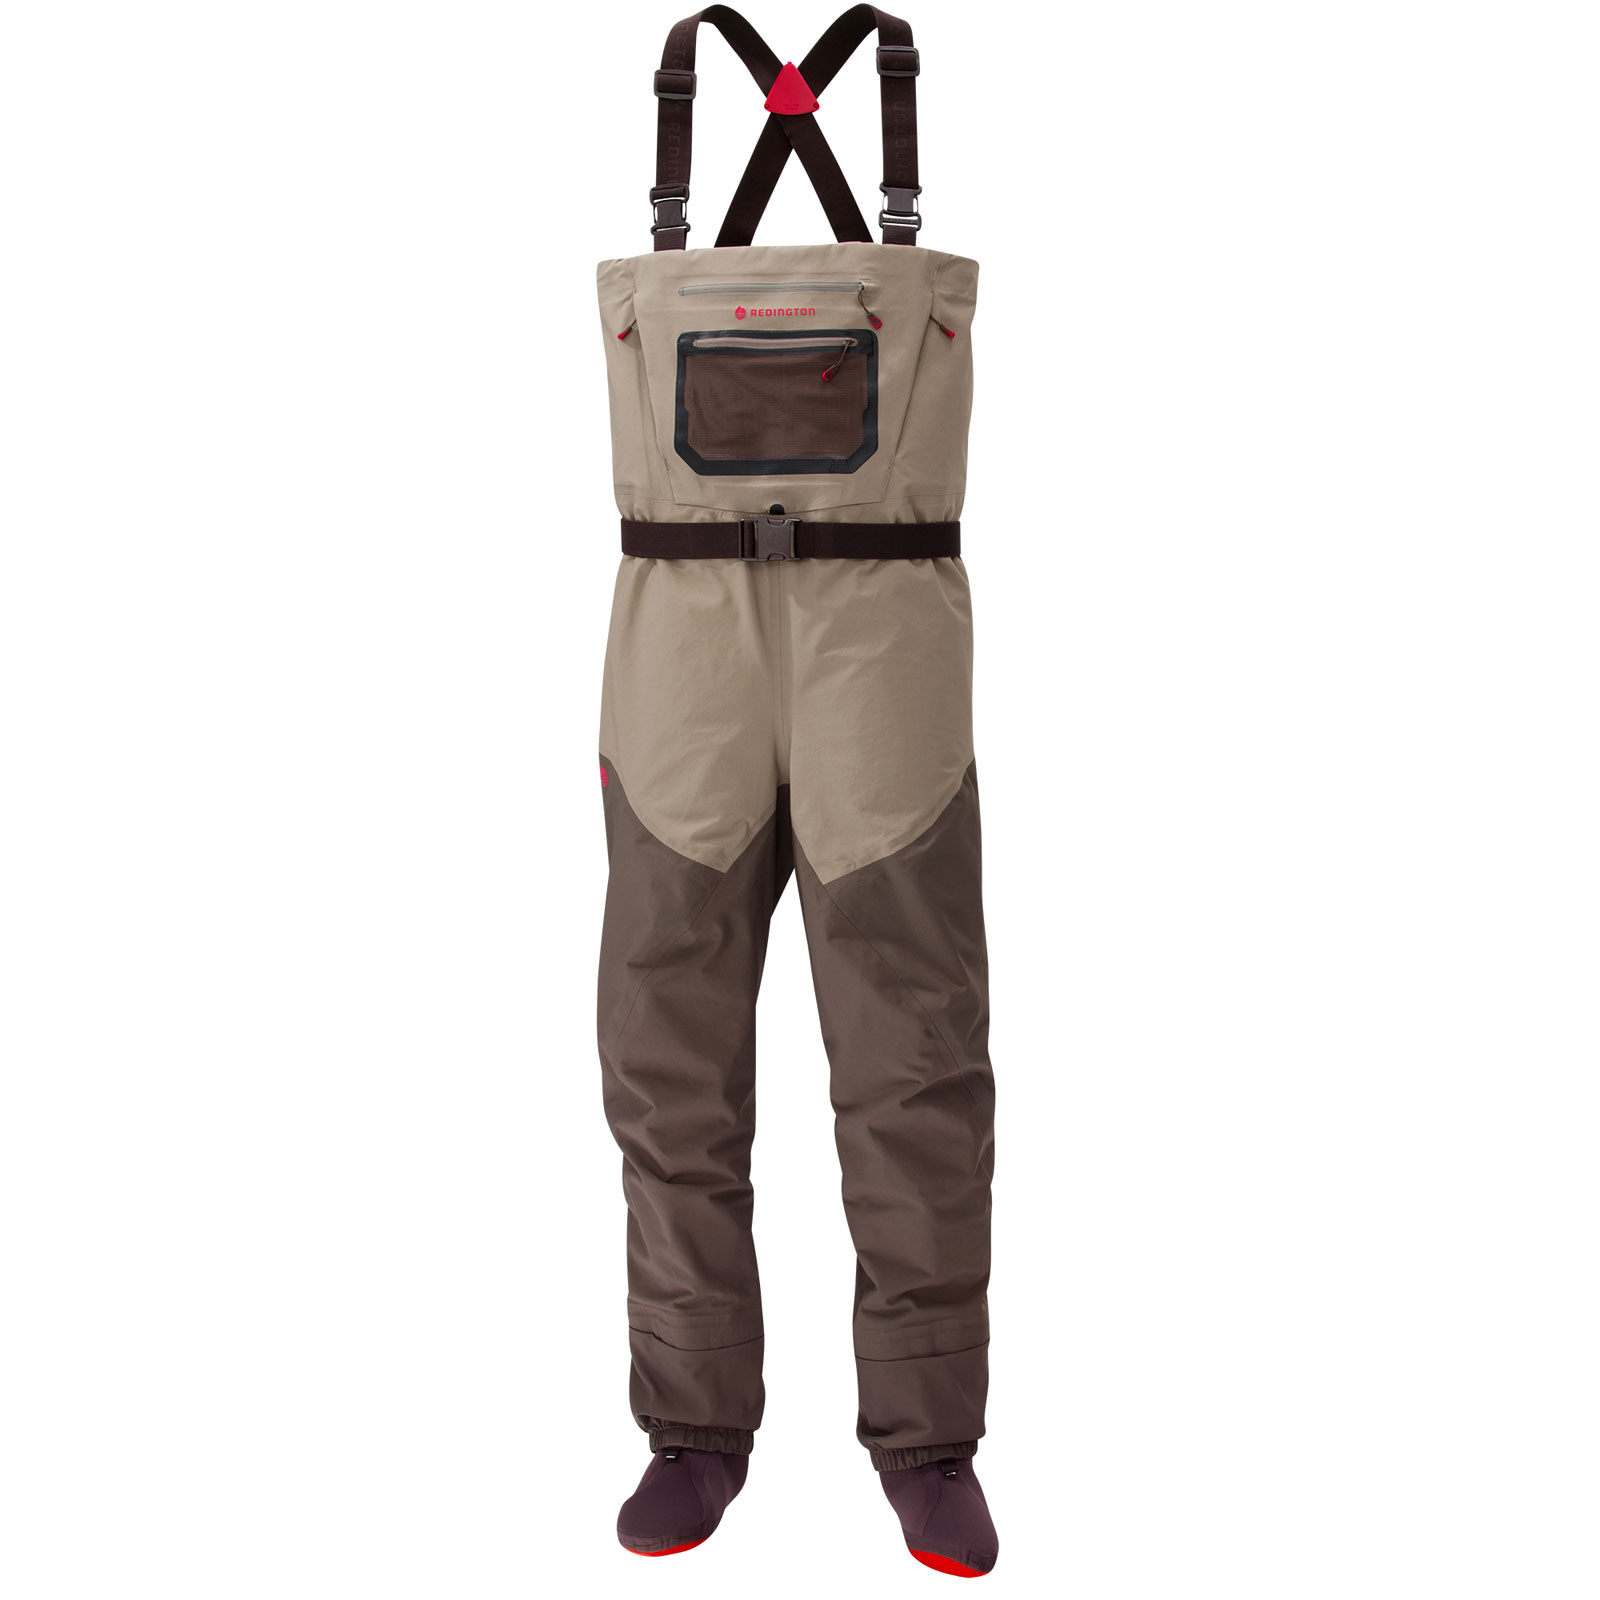 Redington Men's Sonic-Pro HD Stockingfoot Fishing Waders - Brown (L)